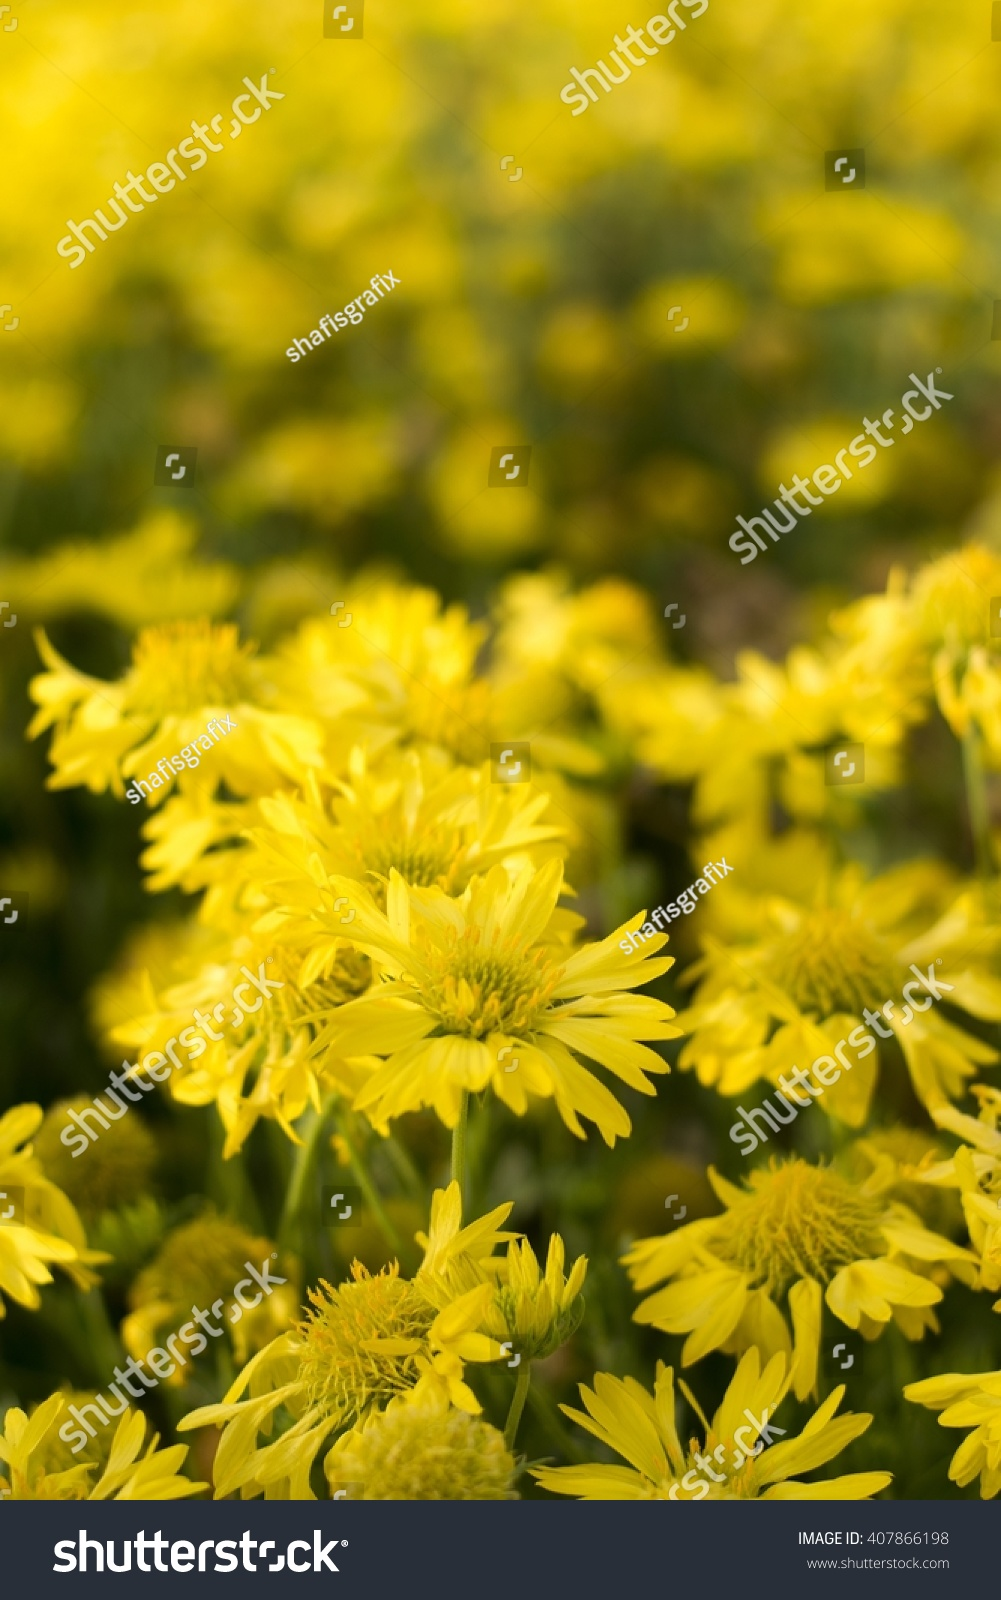 Dandelion Flowers With Blur Or Blurry Background Yellow Colour